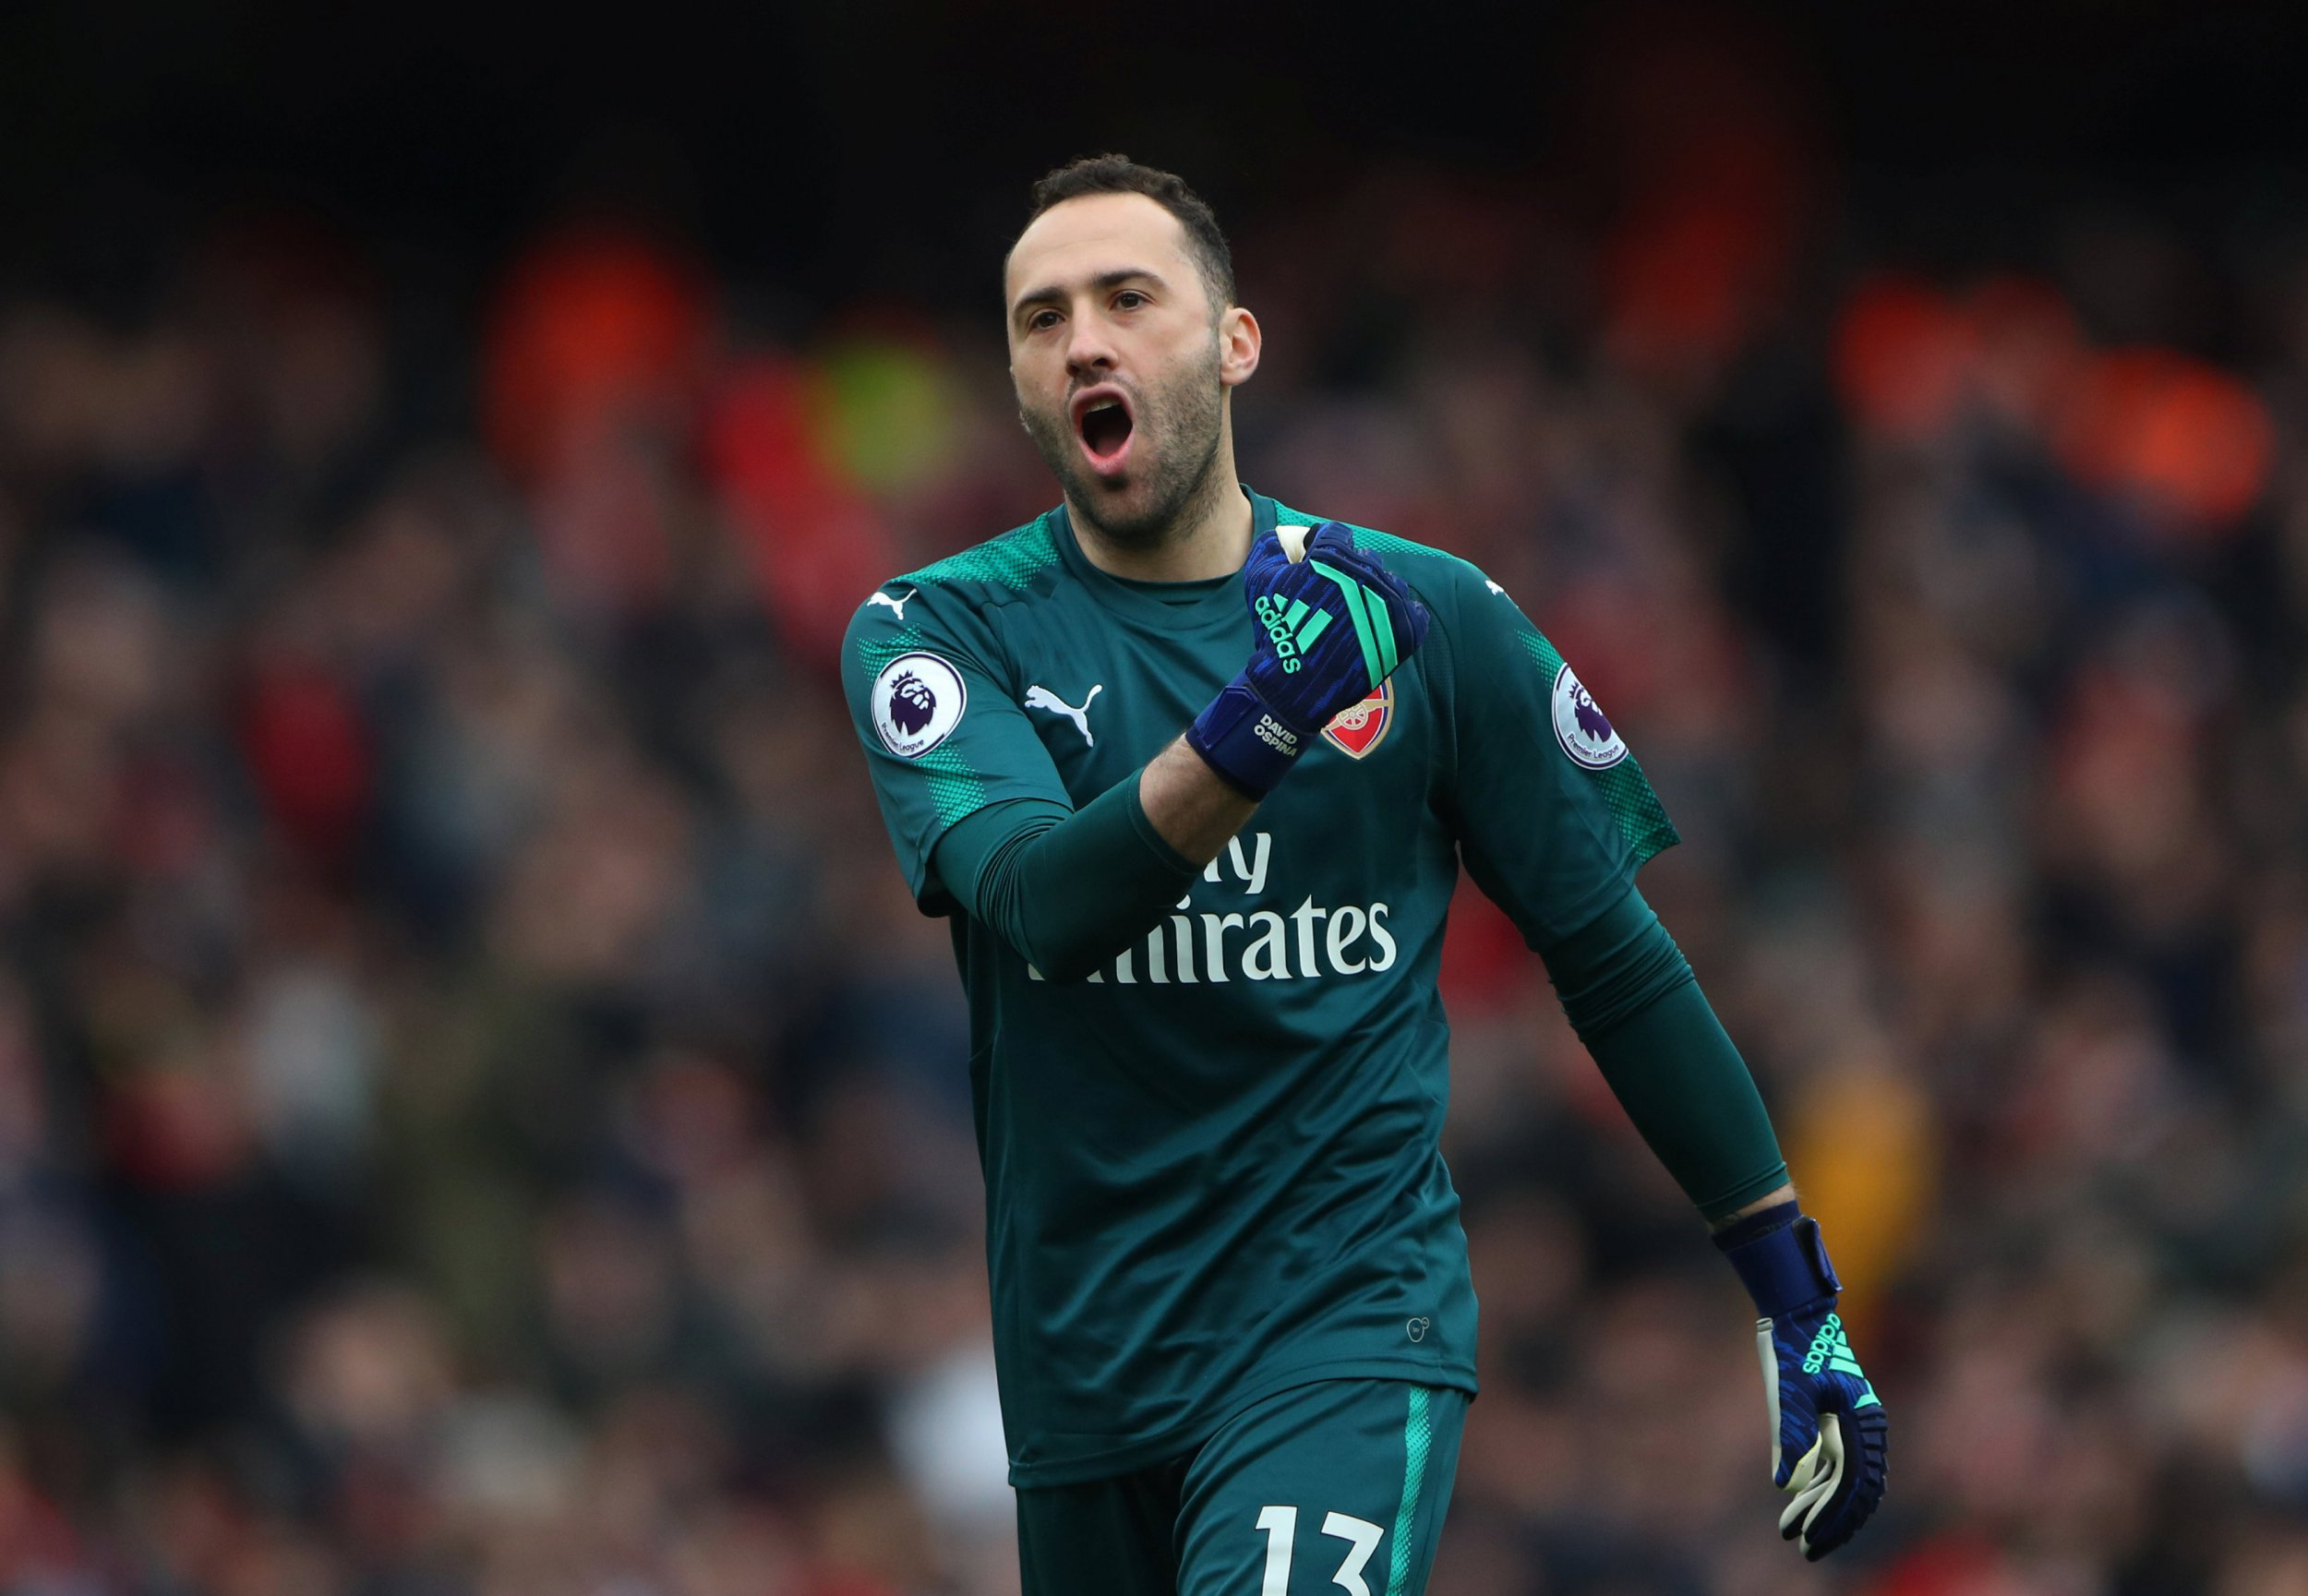 "Soccer Football - Premier League - Arsenal vs Stoke City - Emirates Stadium, London, Britain - April 1, 2018 Arsenal's David Ospina celebrates their second goal scored by Arsenal's Pierre-Emerick Aubameyang REUTERS/Hannah McKay EDITORIAL USE ONLY. No use with unauthorized audio, video, data, fixture lists, club/league logos or ""live"" services. Online in-match use limited to 75 images, no video emulation. No use in betting, games or single club/league/player publications. Please contact your account representative for further details."